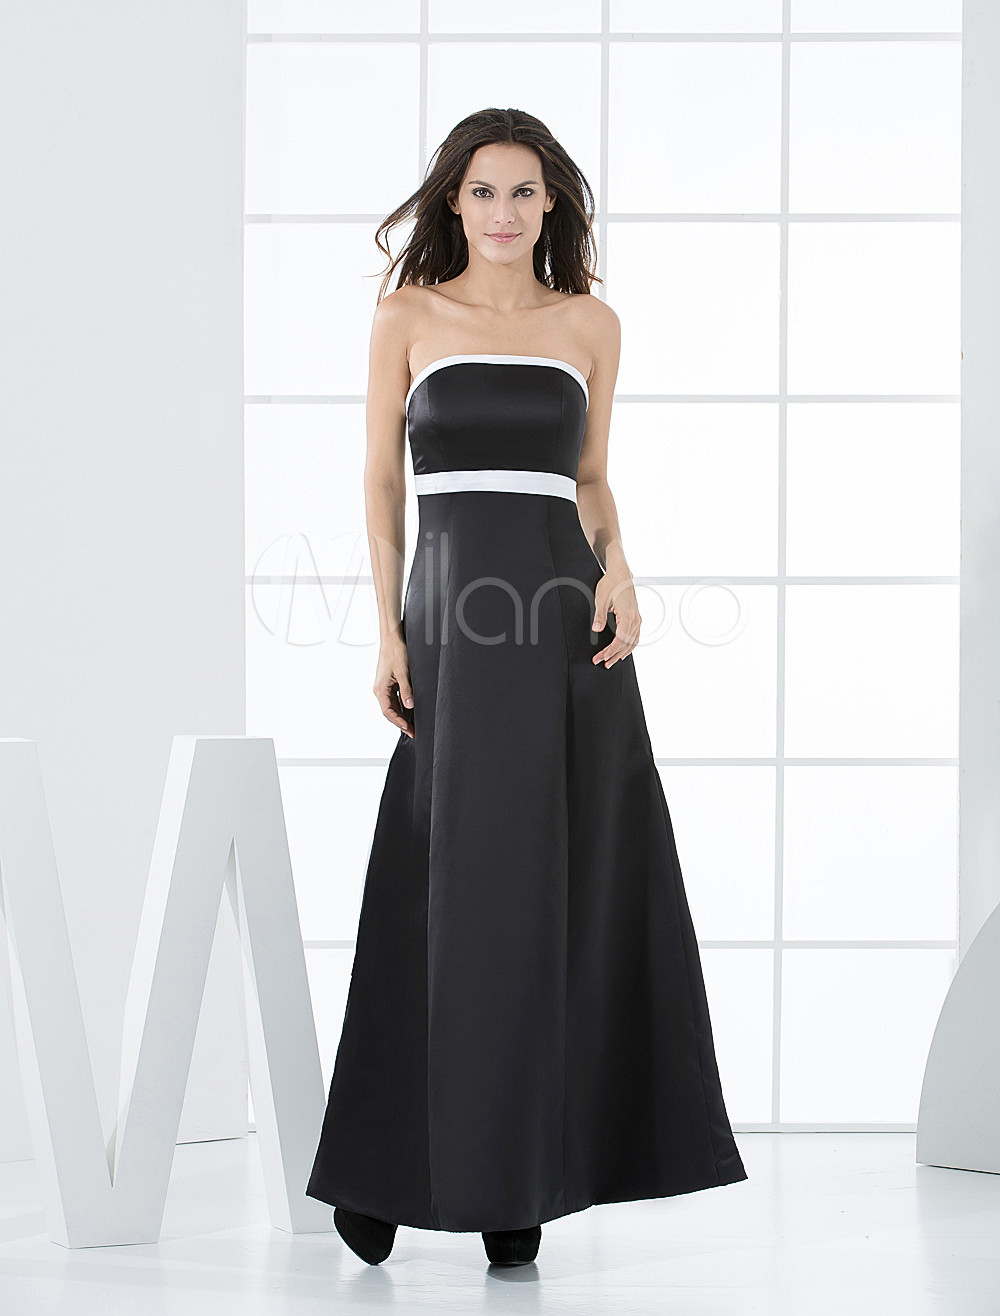 A-line Strapless Empire Waist Sash Satin Bridesmaid Dress